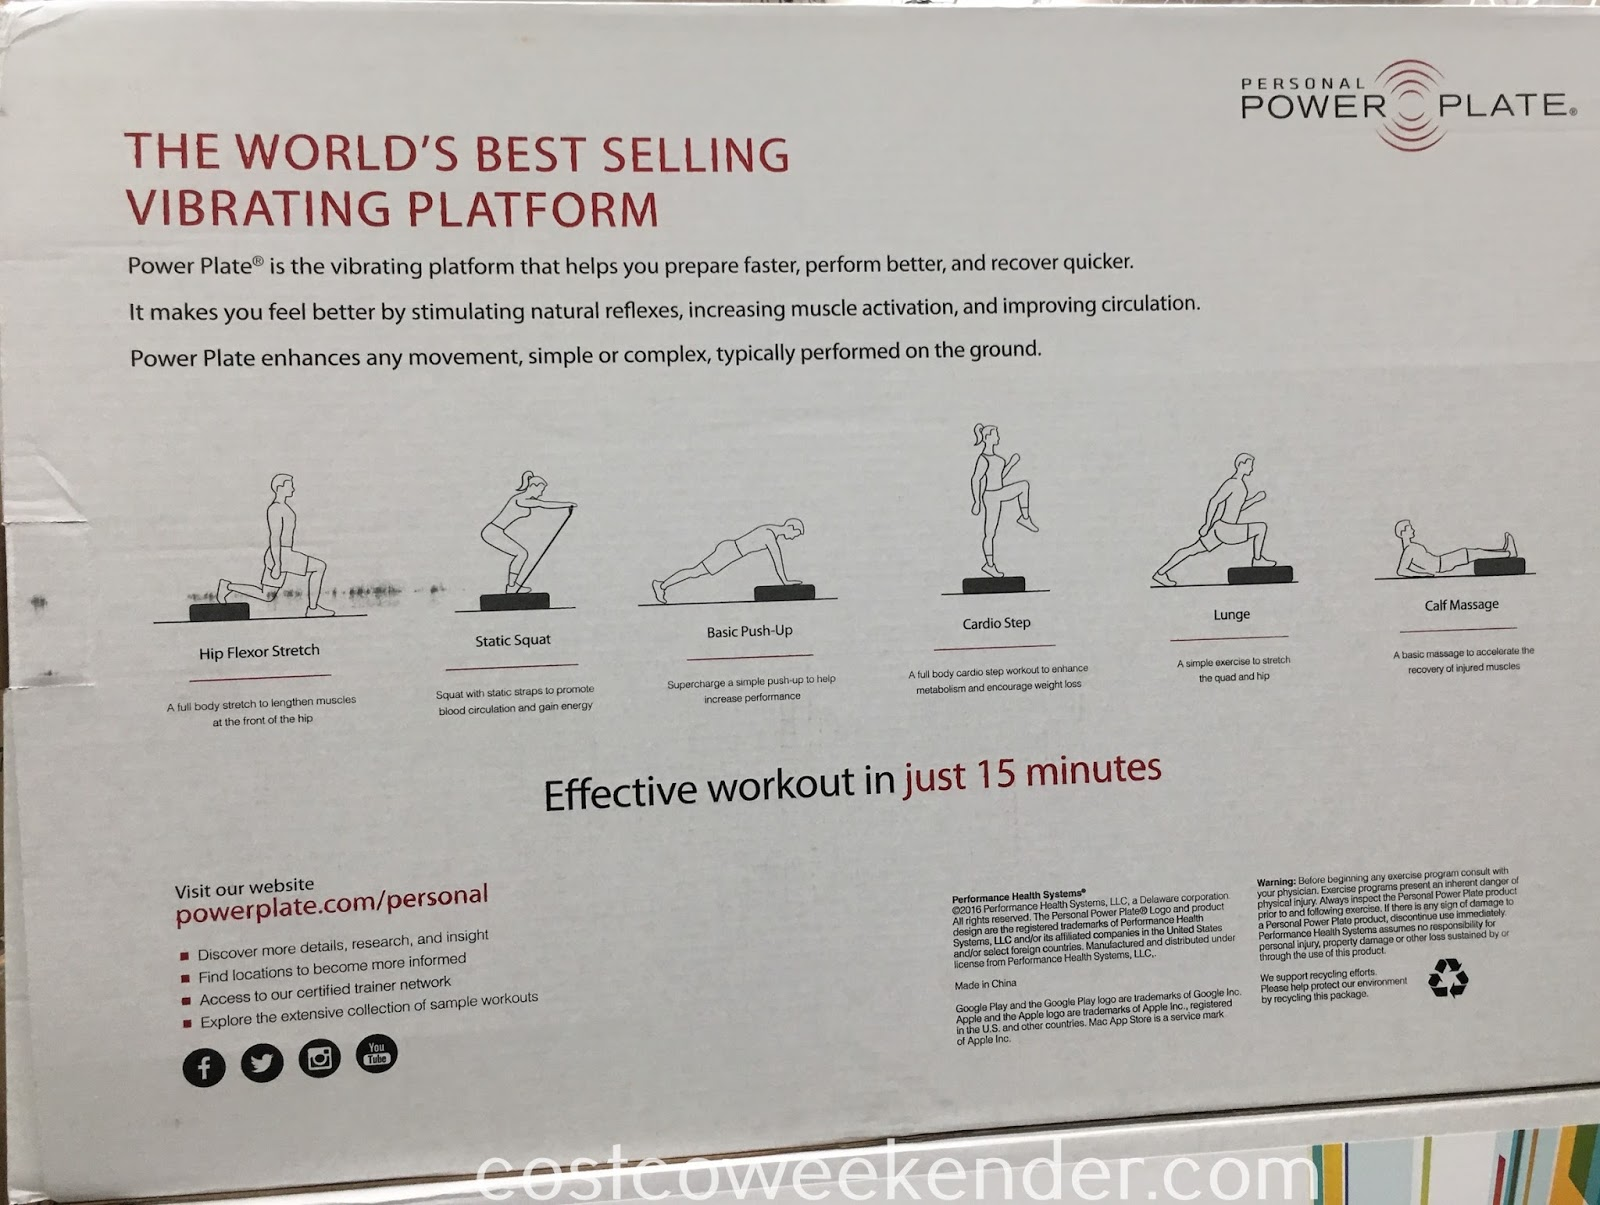 Costco 1118838 - Personal Power Plate - all you need for a good workout and exercise